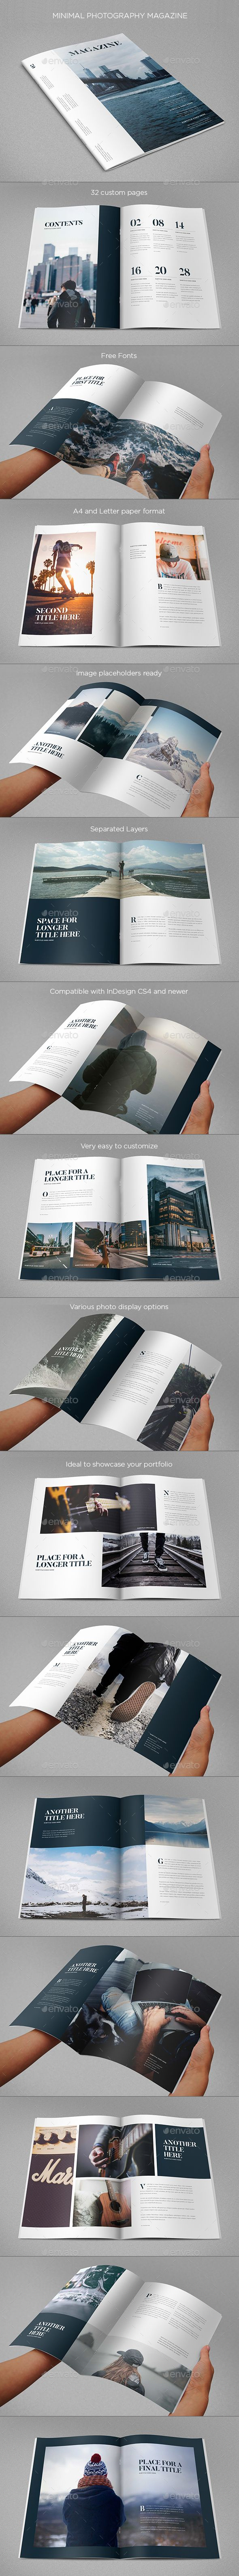 Minimal Photography Magazine by AbraDesign MINIMAL PHOTOGRAPHY MAGAZINEClean, modern and simple design ideal for any purposes. Very easy to adapt and customize. DETAILS· 3